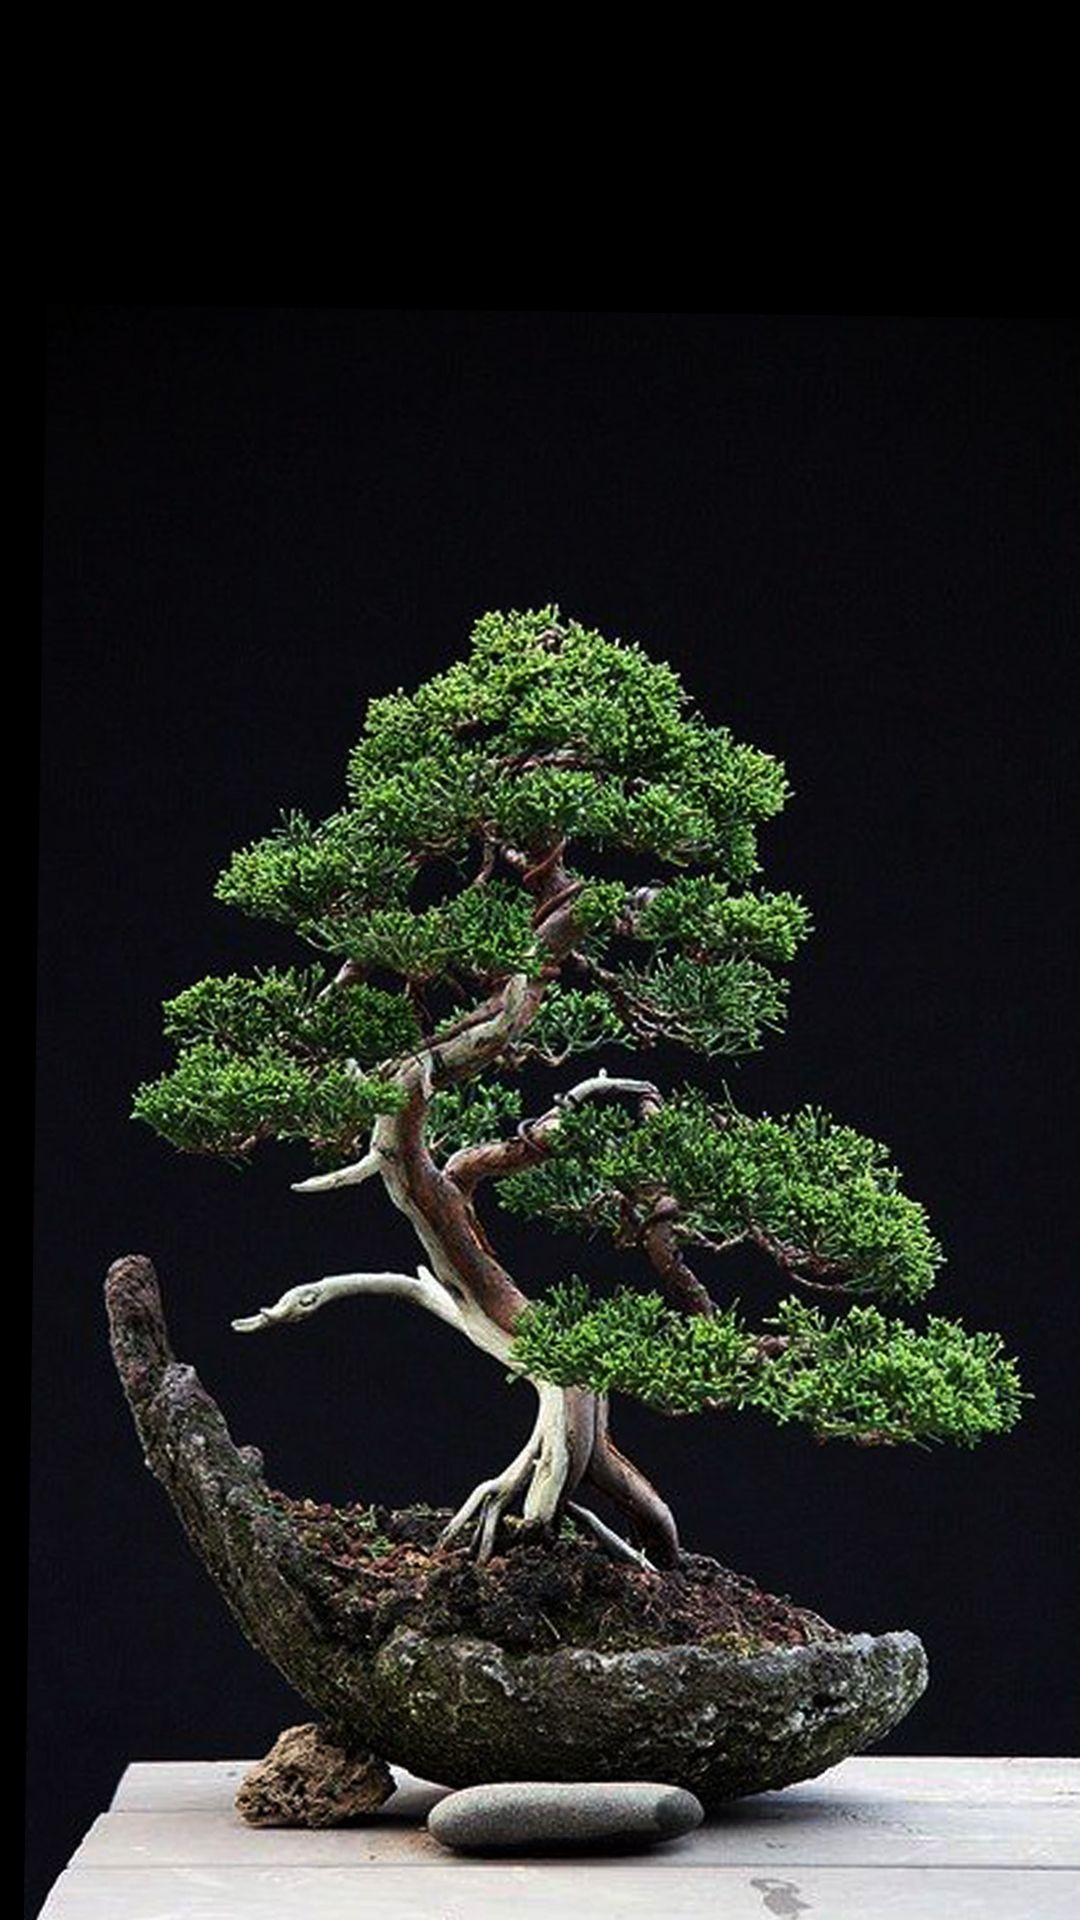 Phone wallpaper from Zedge - Bonsai